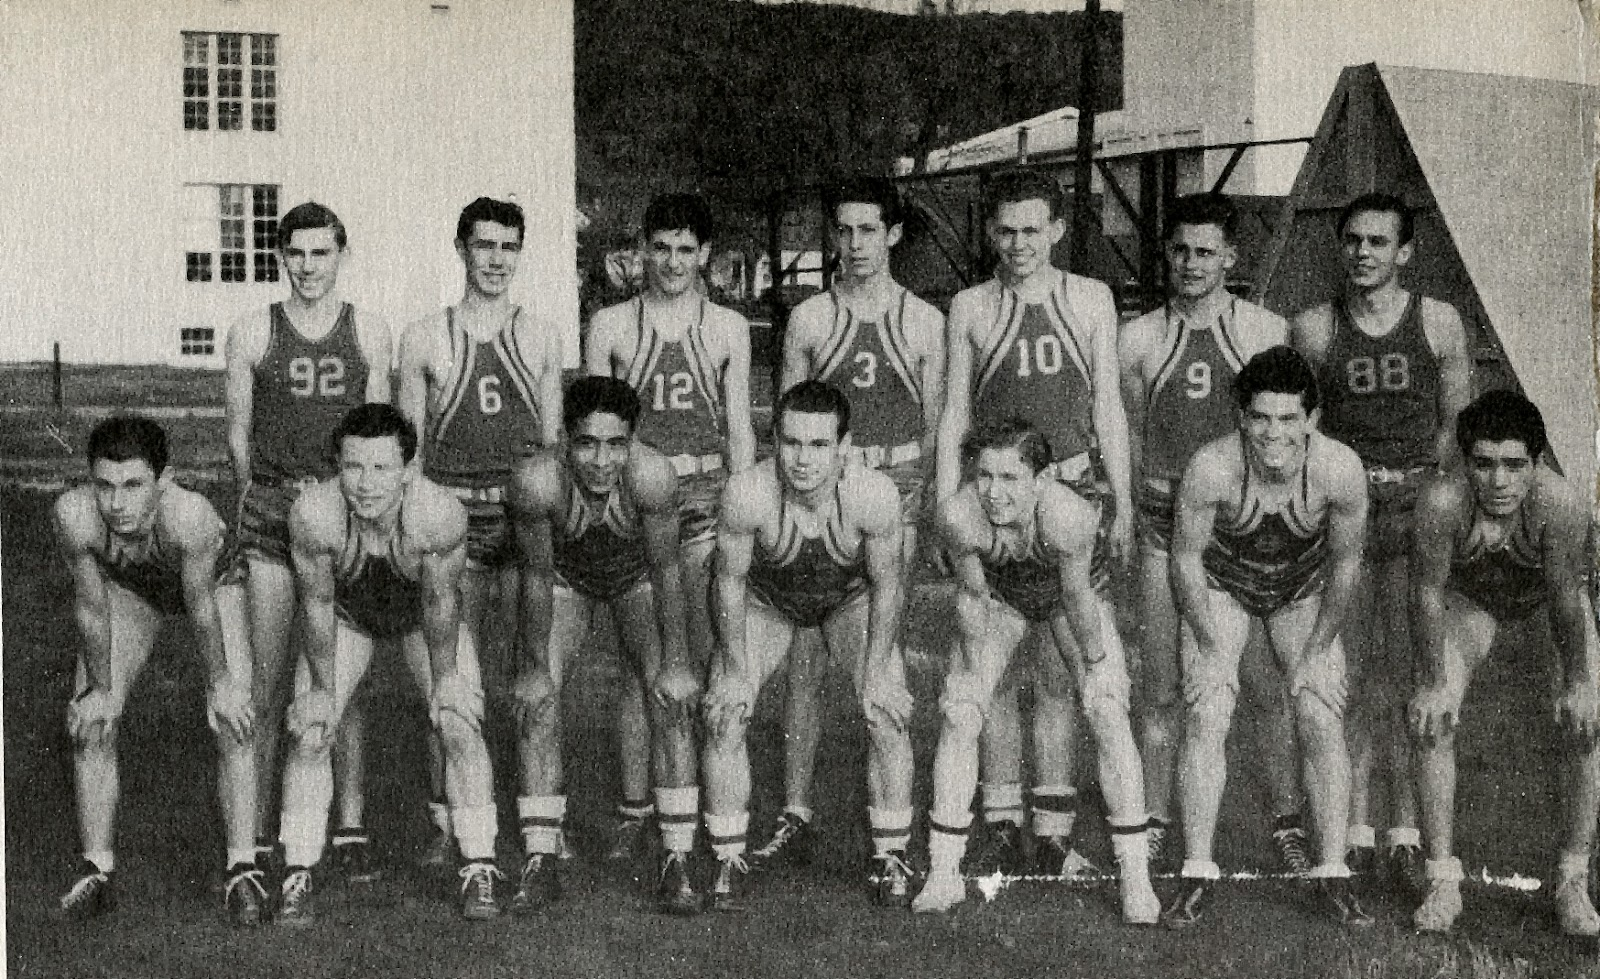 Five veterans side by side (front row from left:) Lloyd Null, Pat Peters, Joe Huante, Punny Dambacher, Dick Baker